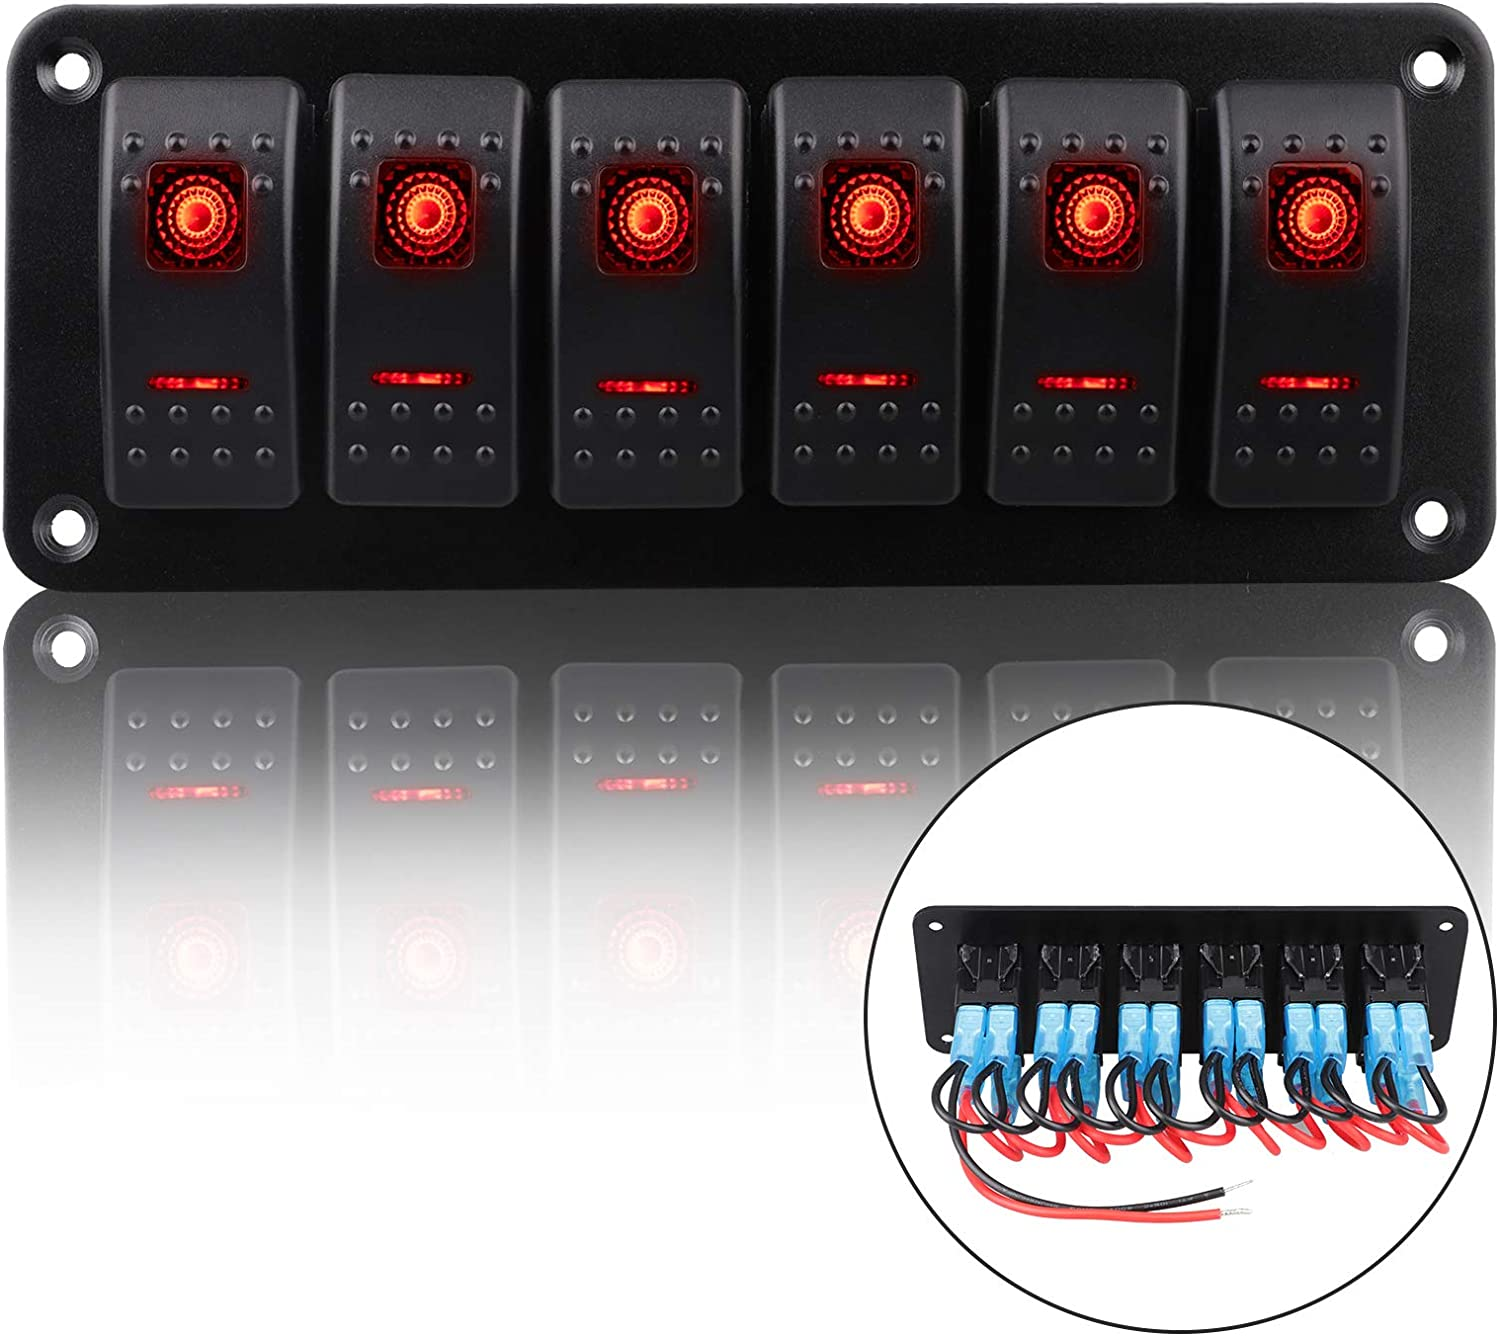 Pre-Wired Rocker Switch Aluminum Panel 6 Gang Toggle Switches Dash 5 Pin ON/Off 2 LED Backlit for Boat Car Marine